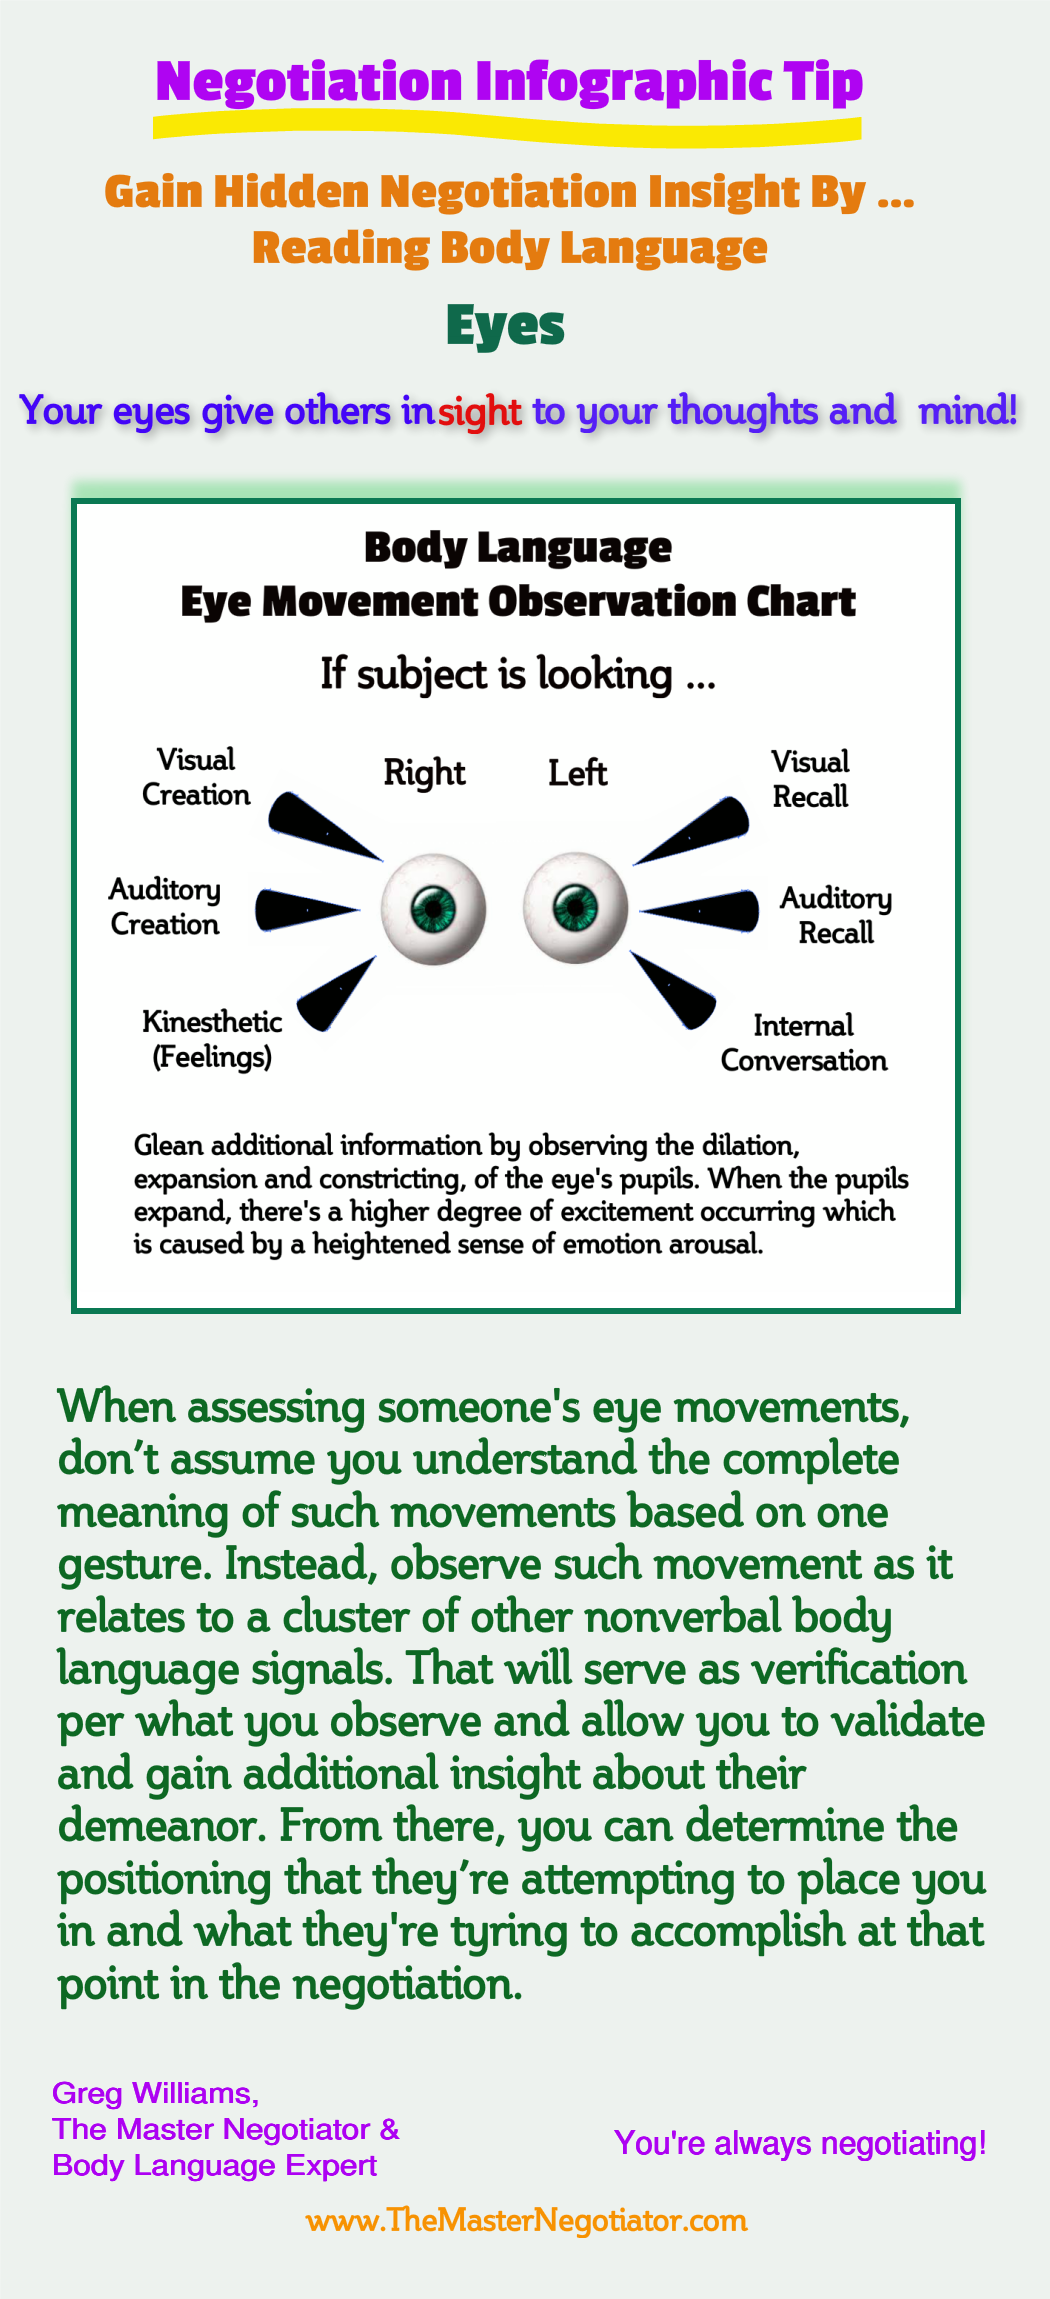 Eyes Gain Hidden Negotiation Insight By Reading Body Language